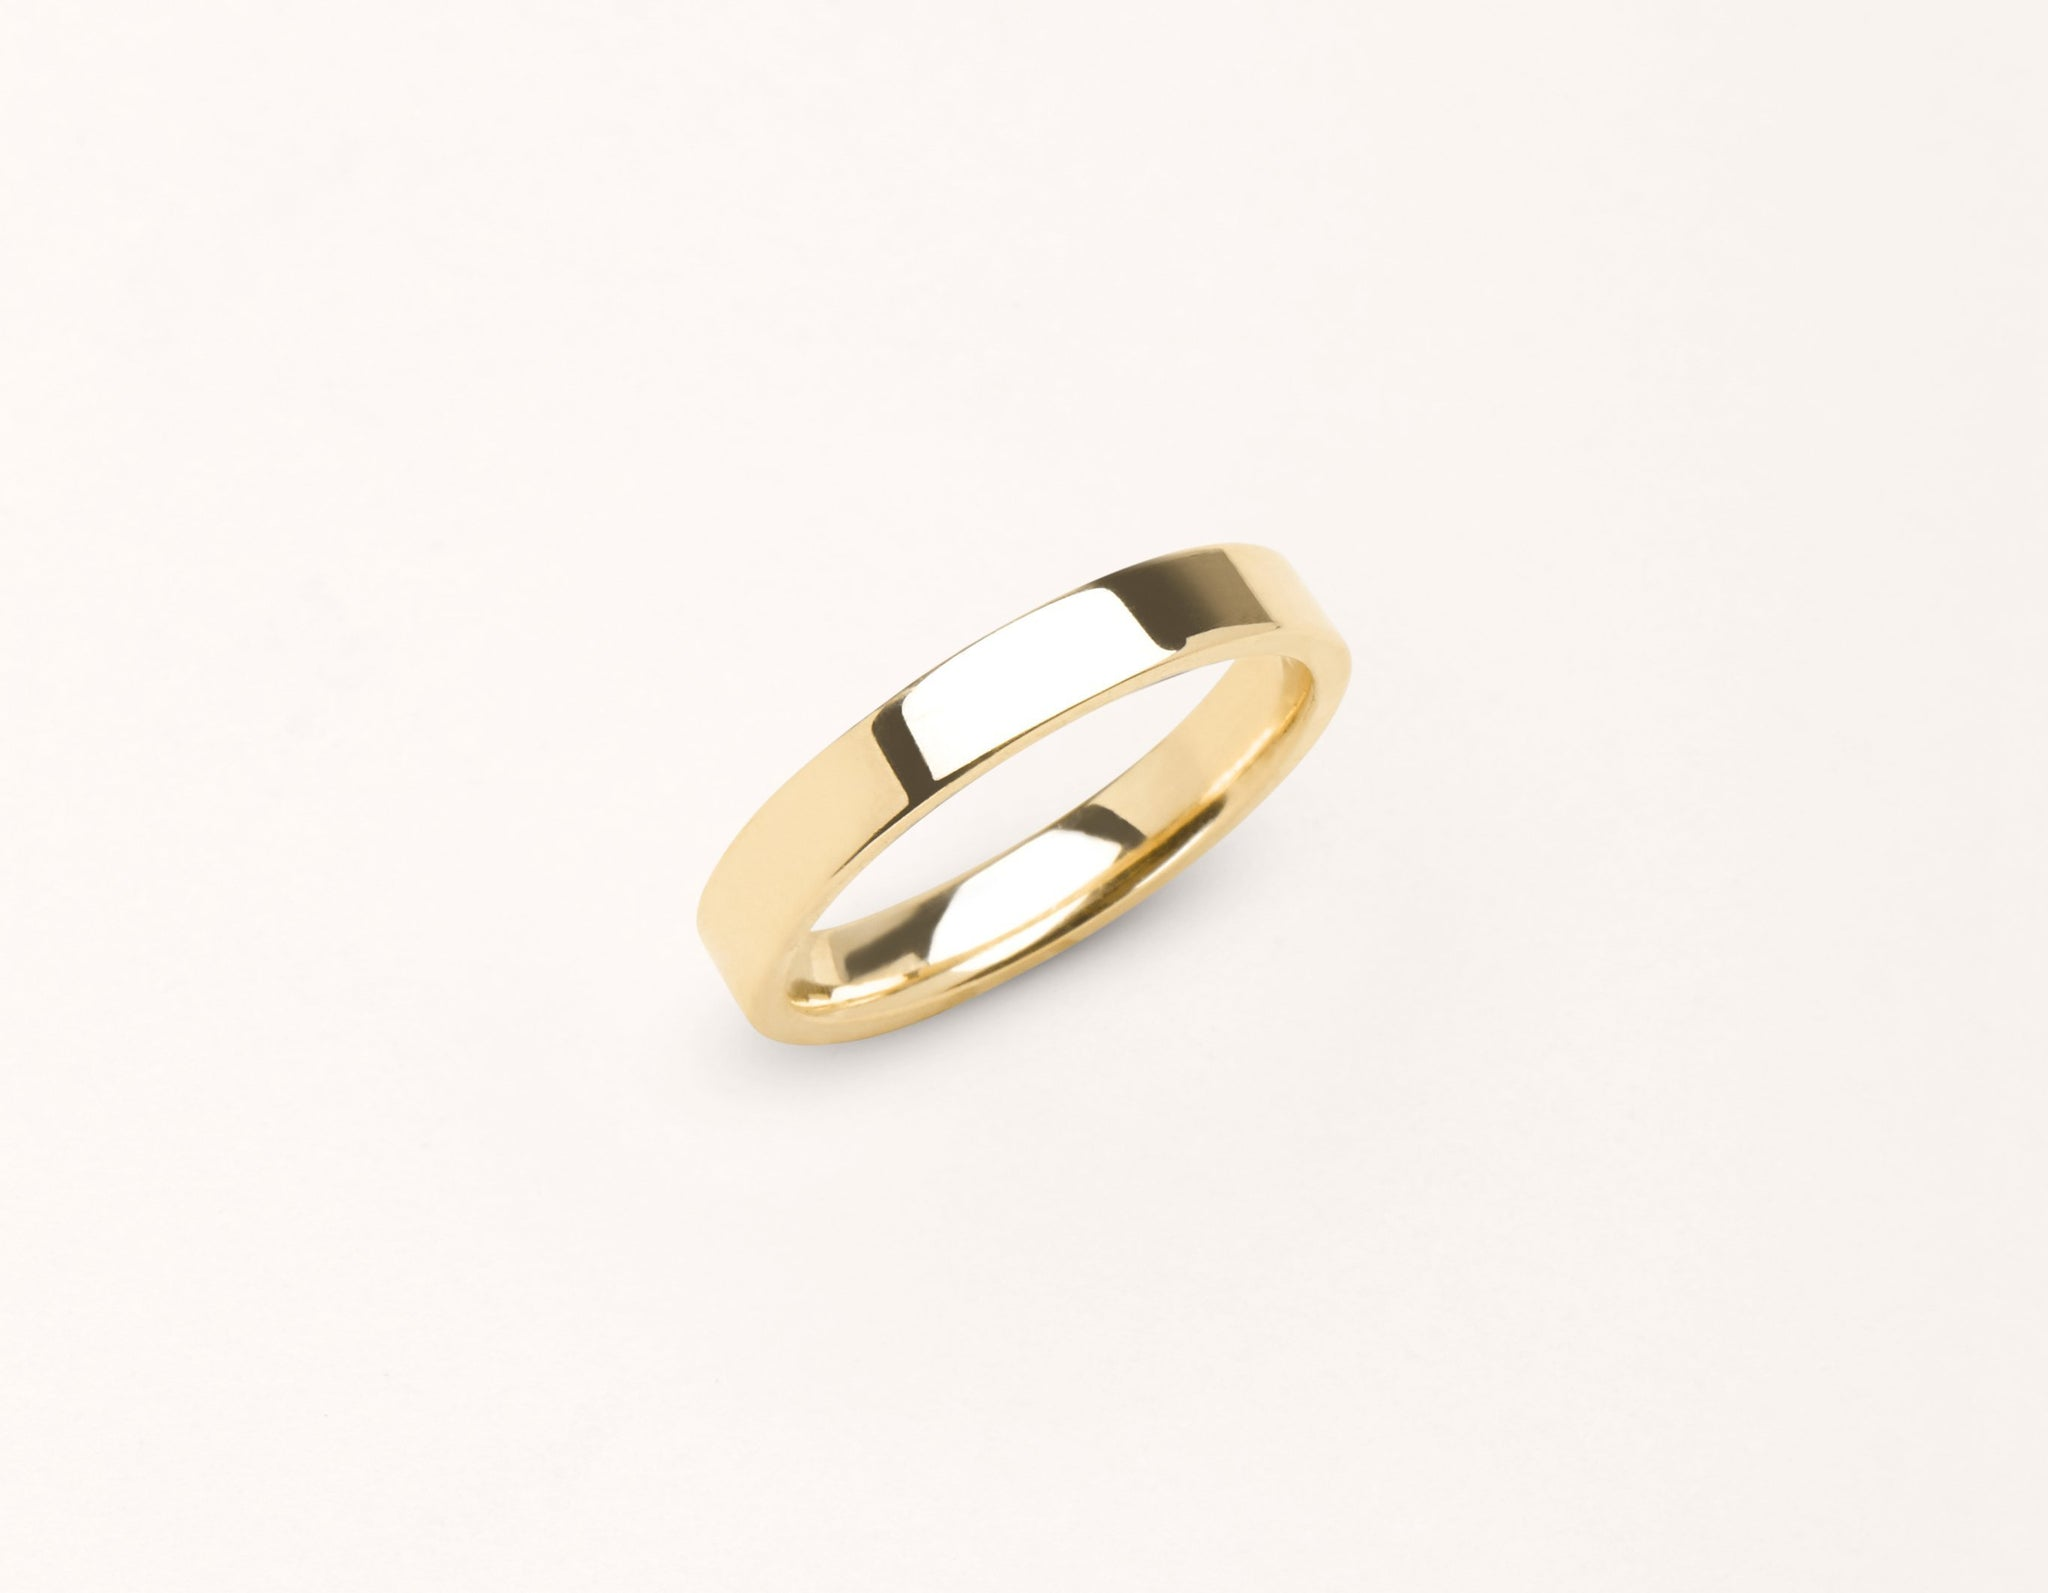 Minimalist 18k solid yellow gold 3 mm Flat Wedding Band for men and women Vrai and Oro